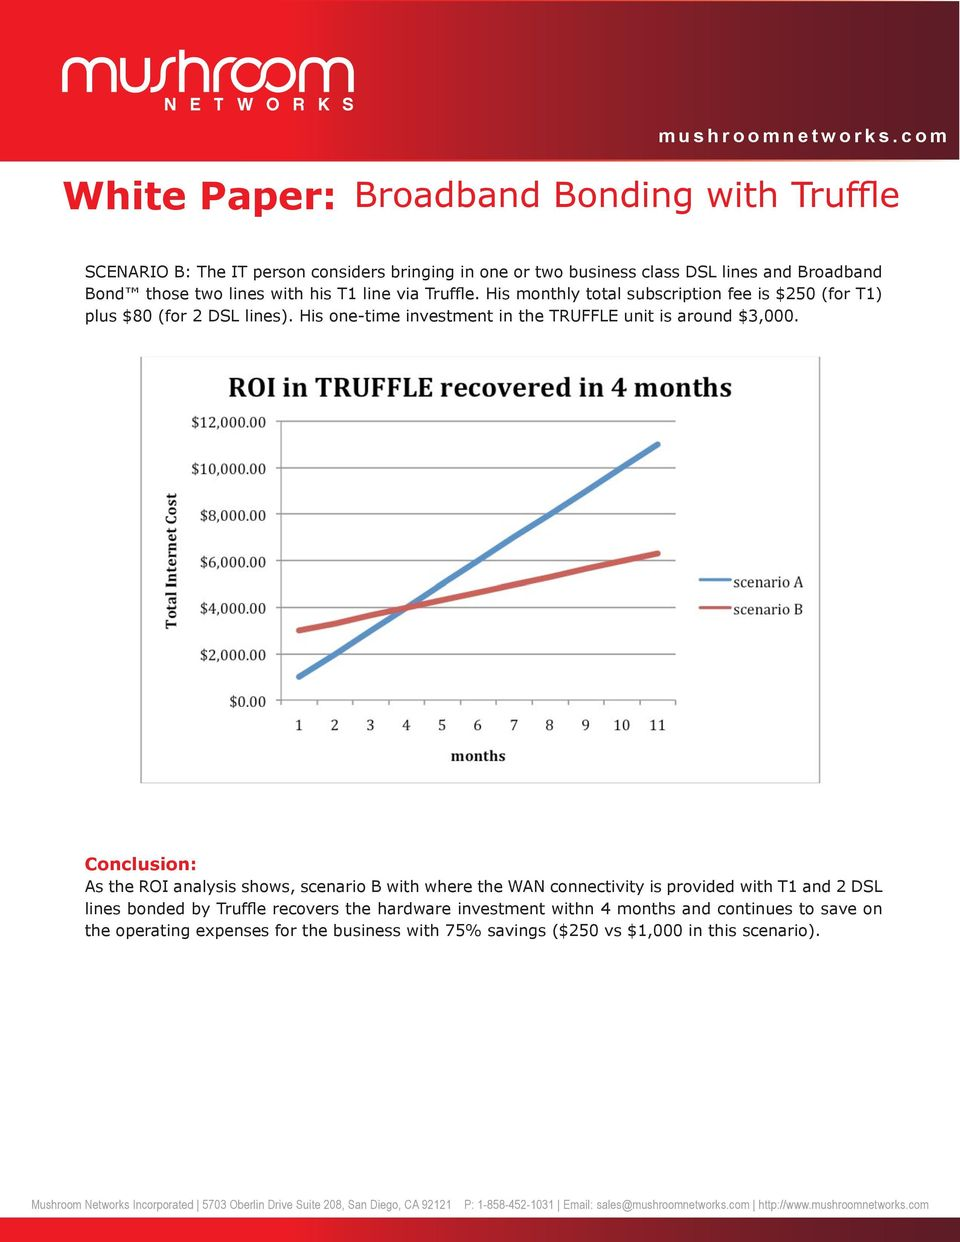 Conclusion: As the ROI analysis shows, scenario B with where the WAN connectivity is provided with T1 and 2 DSL lines bonded by Truffle recovers